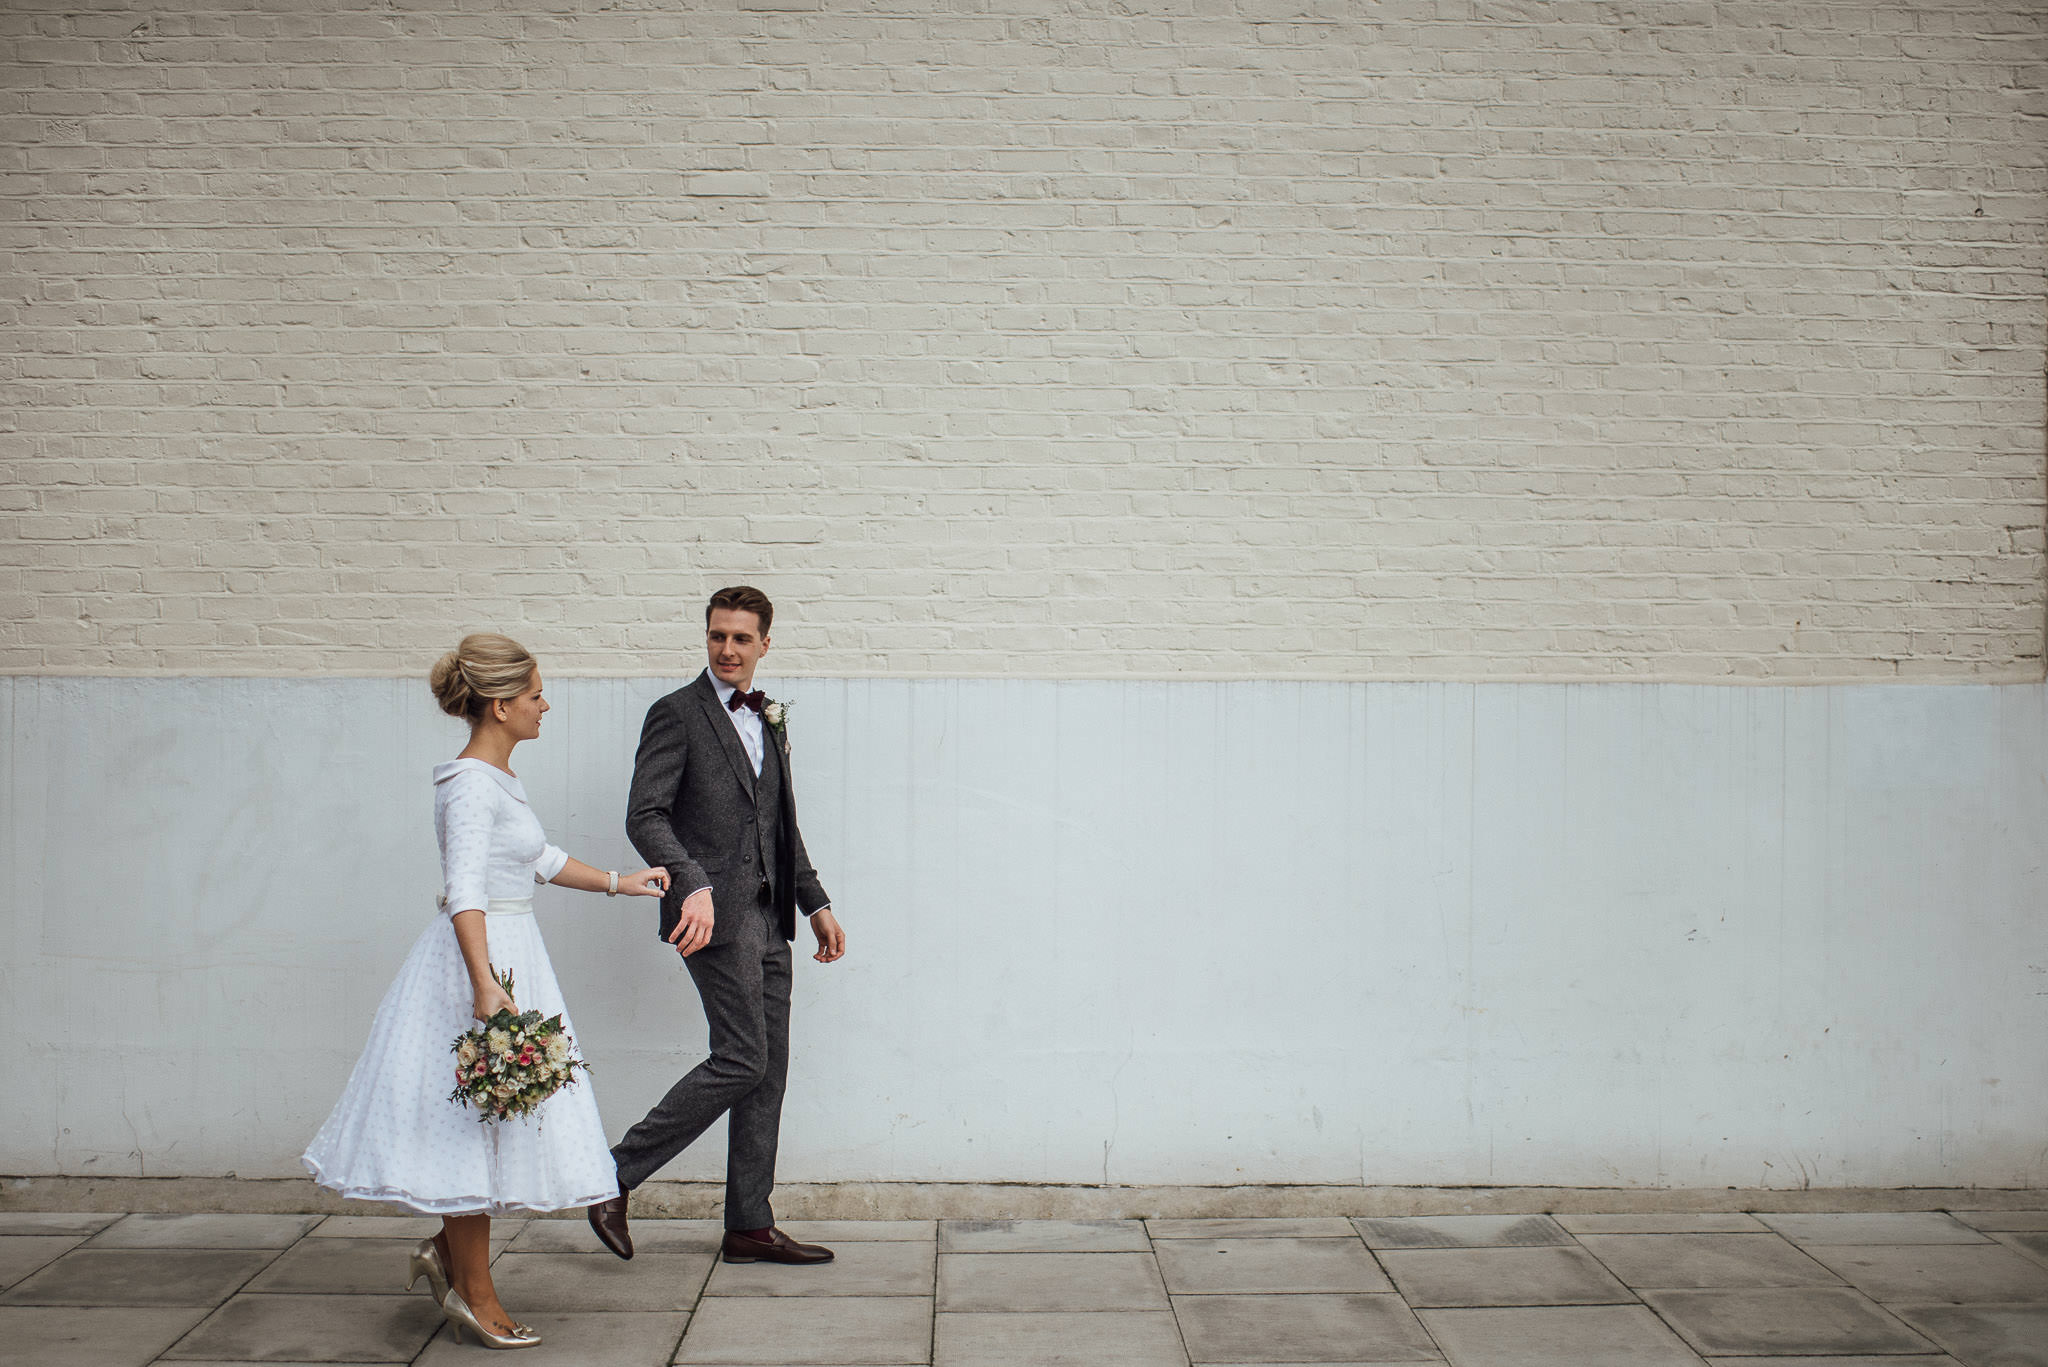 Bride and groom outside the londesborough pub in stoke newington town hall wedding by creative and alternative london wedding photographer the shannons photography